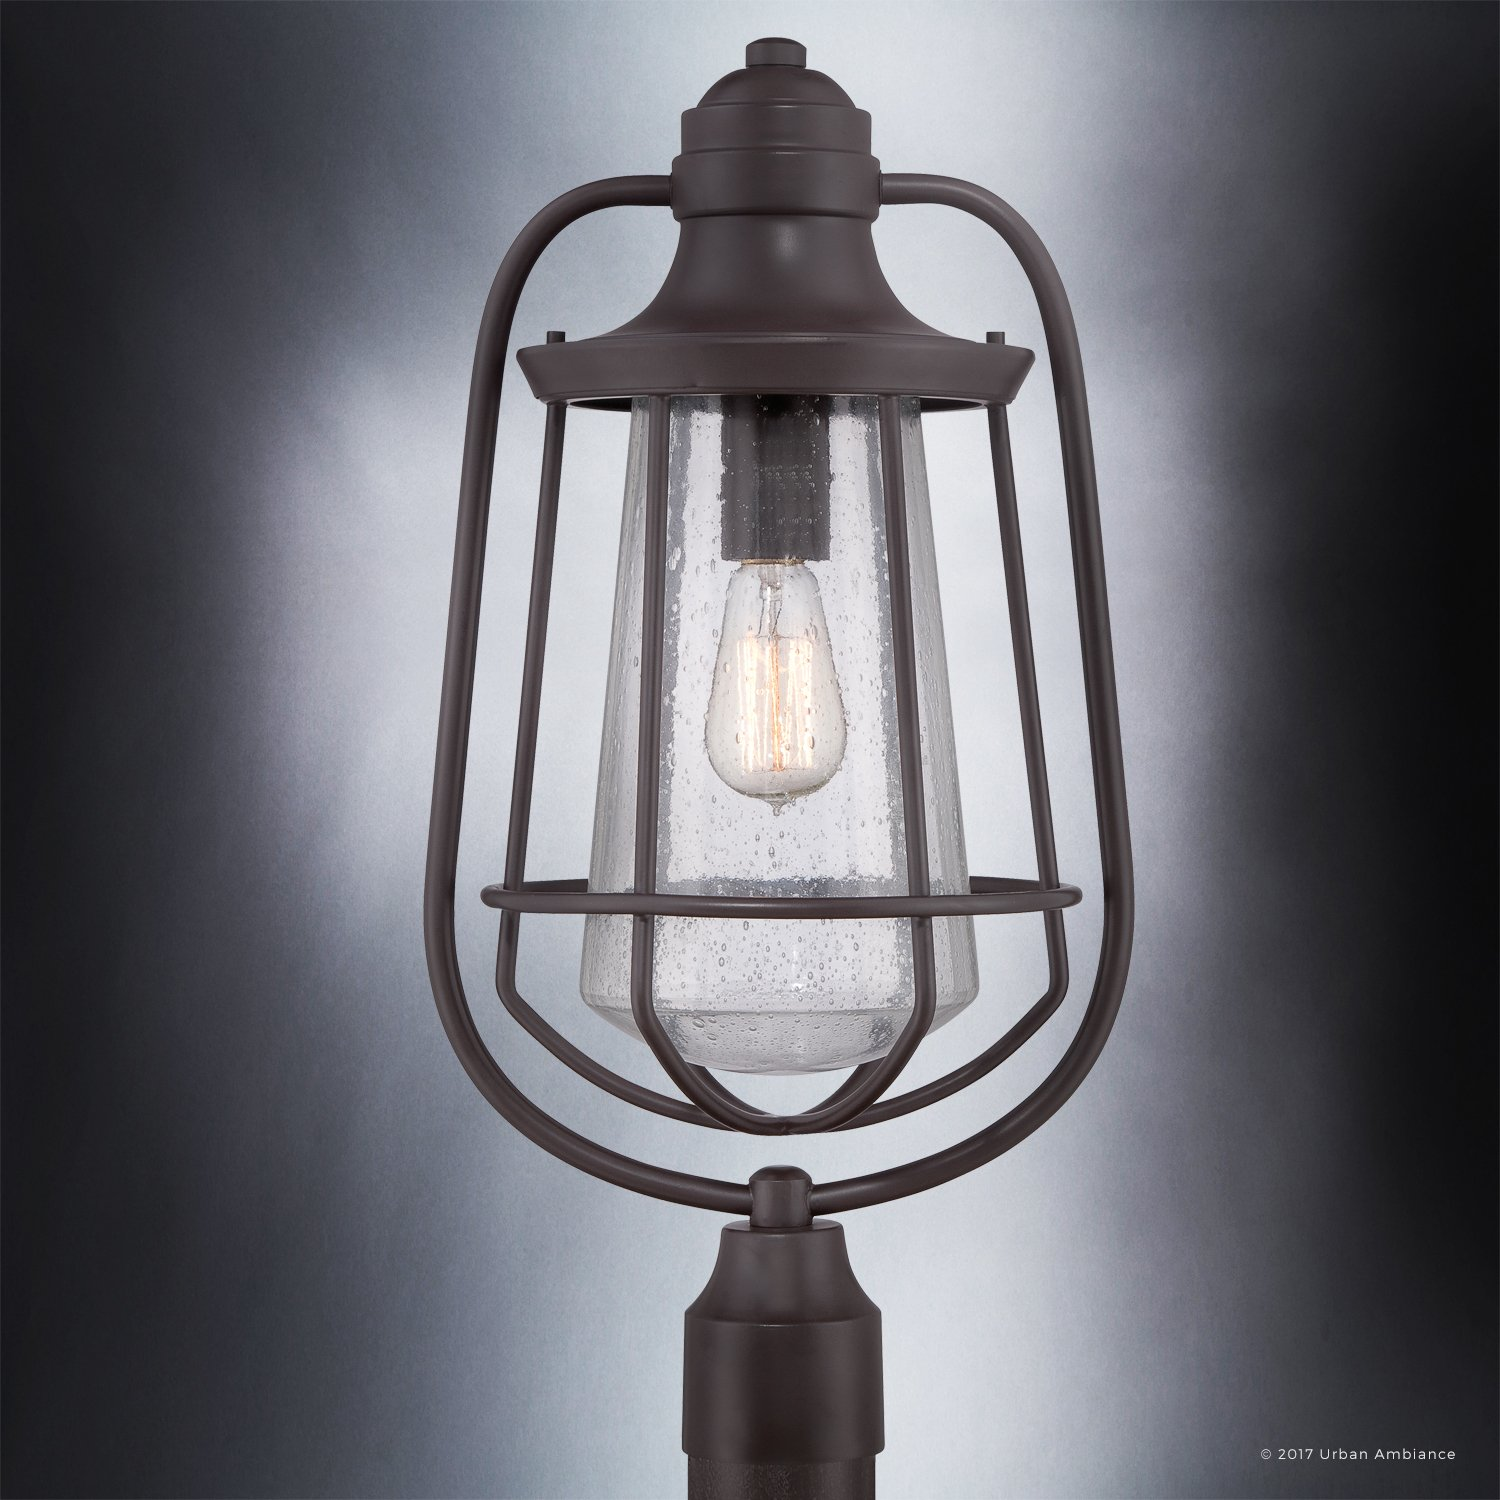 Luxury Vintage Outdoor Post Light, Large Size: 23''H x 11''W, with Nautical Style Elements, Cage Design, Estate Bronze Finish and Seeded Glass, Includes Edison Bulb, UQL1124 by Urban Ambiance by Urban Ambiance (Image #3)